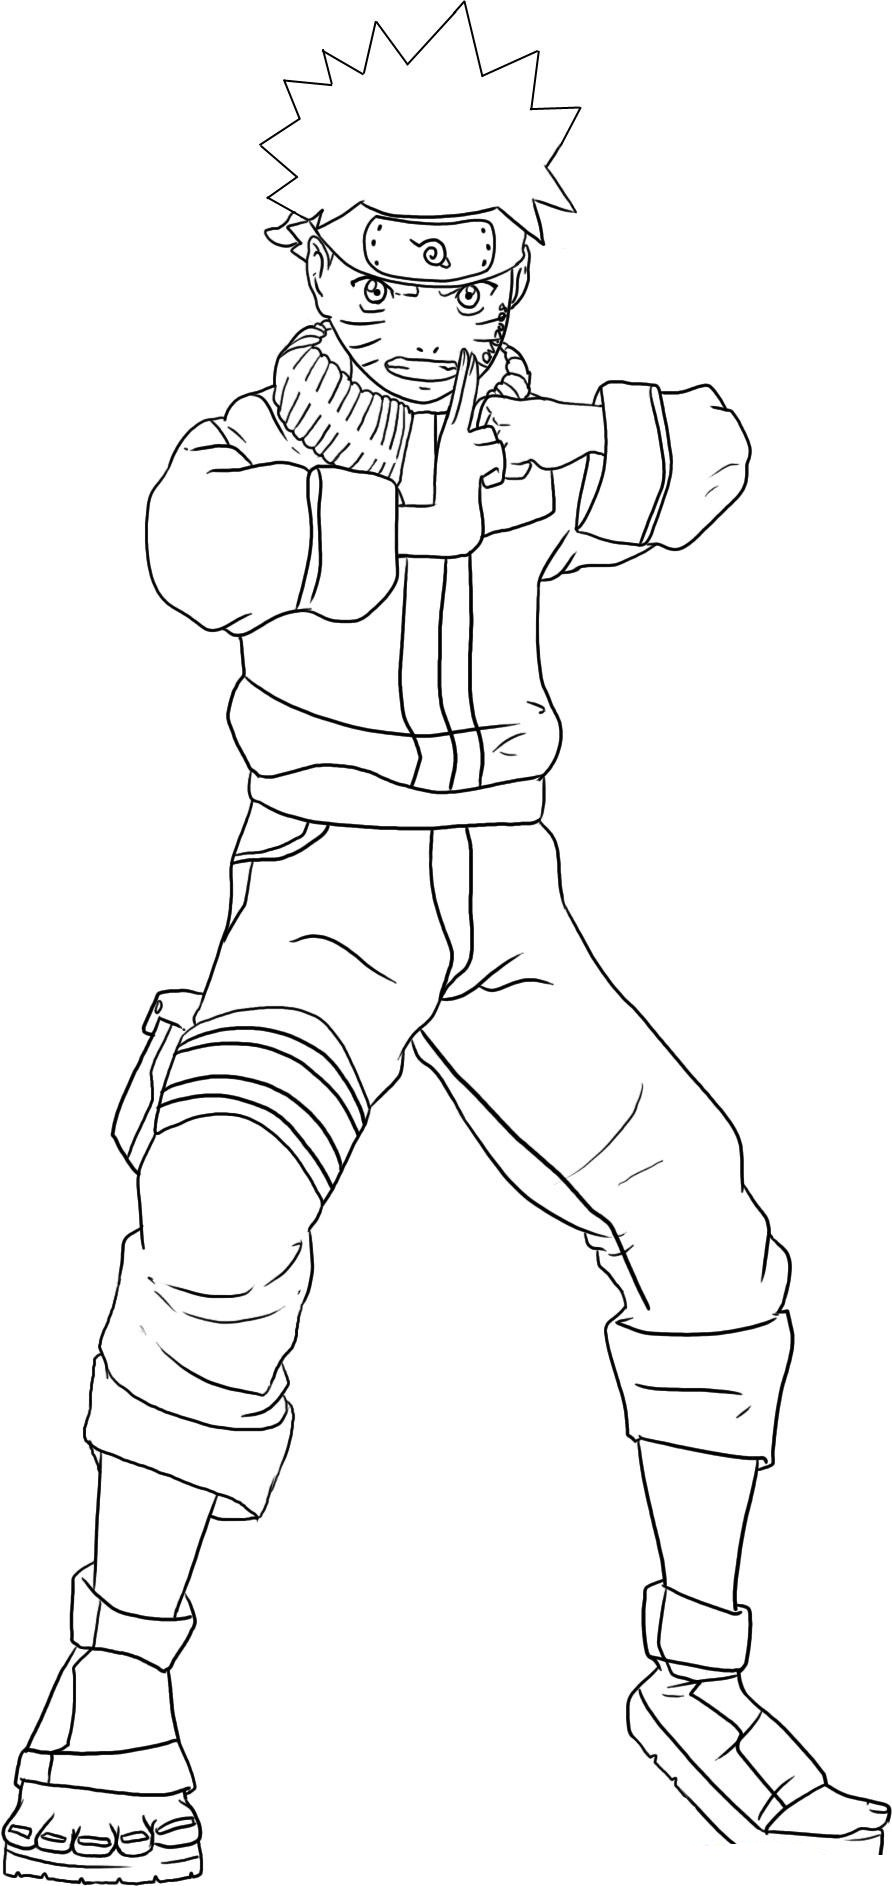 naruto coloring page printable coloring pages naruto coloring pages coloring naruto page 1 1